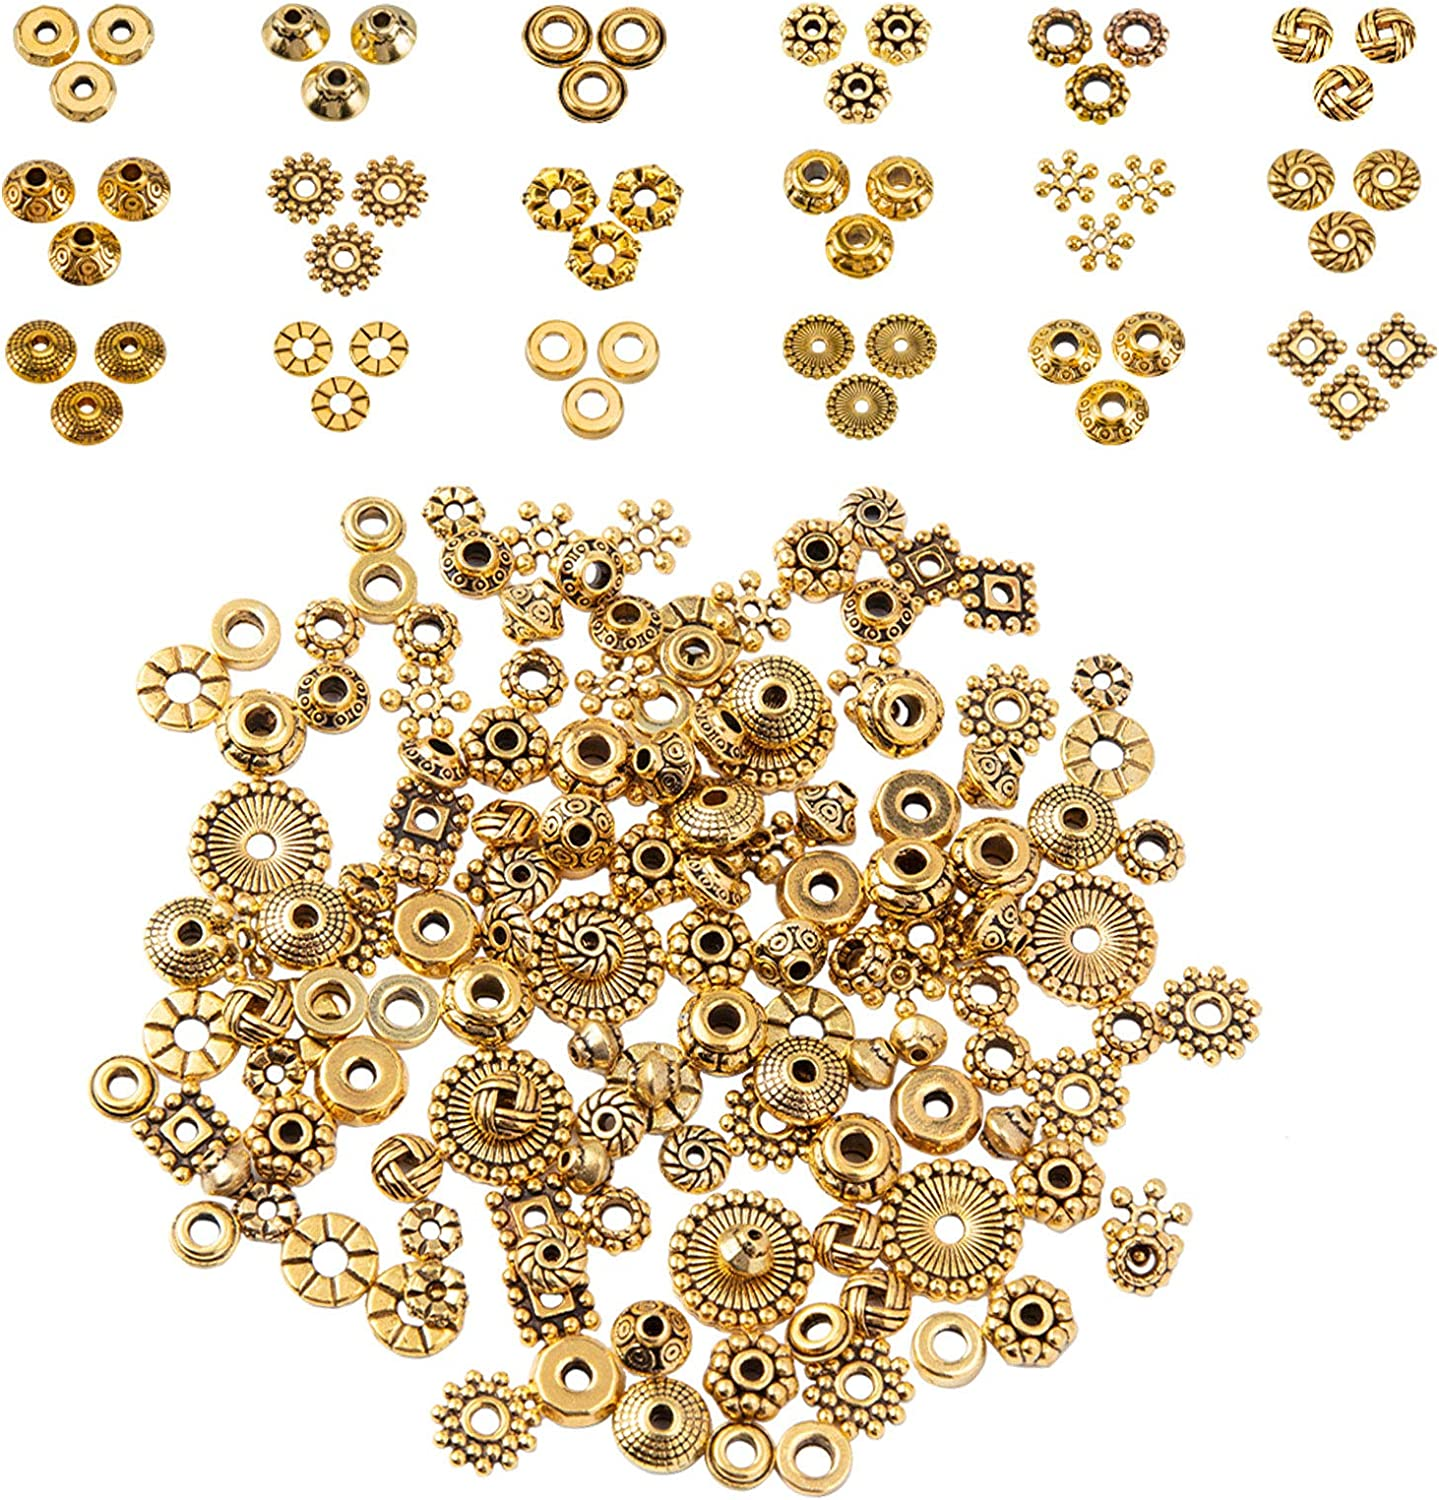 PH PandaHall Antique Golden Spacer Beads, 540pcs 18 Styles Tibetan Alloy Jewelry Beads Metal Spacers for Bracelet Necklace Jewelry Making Supplies